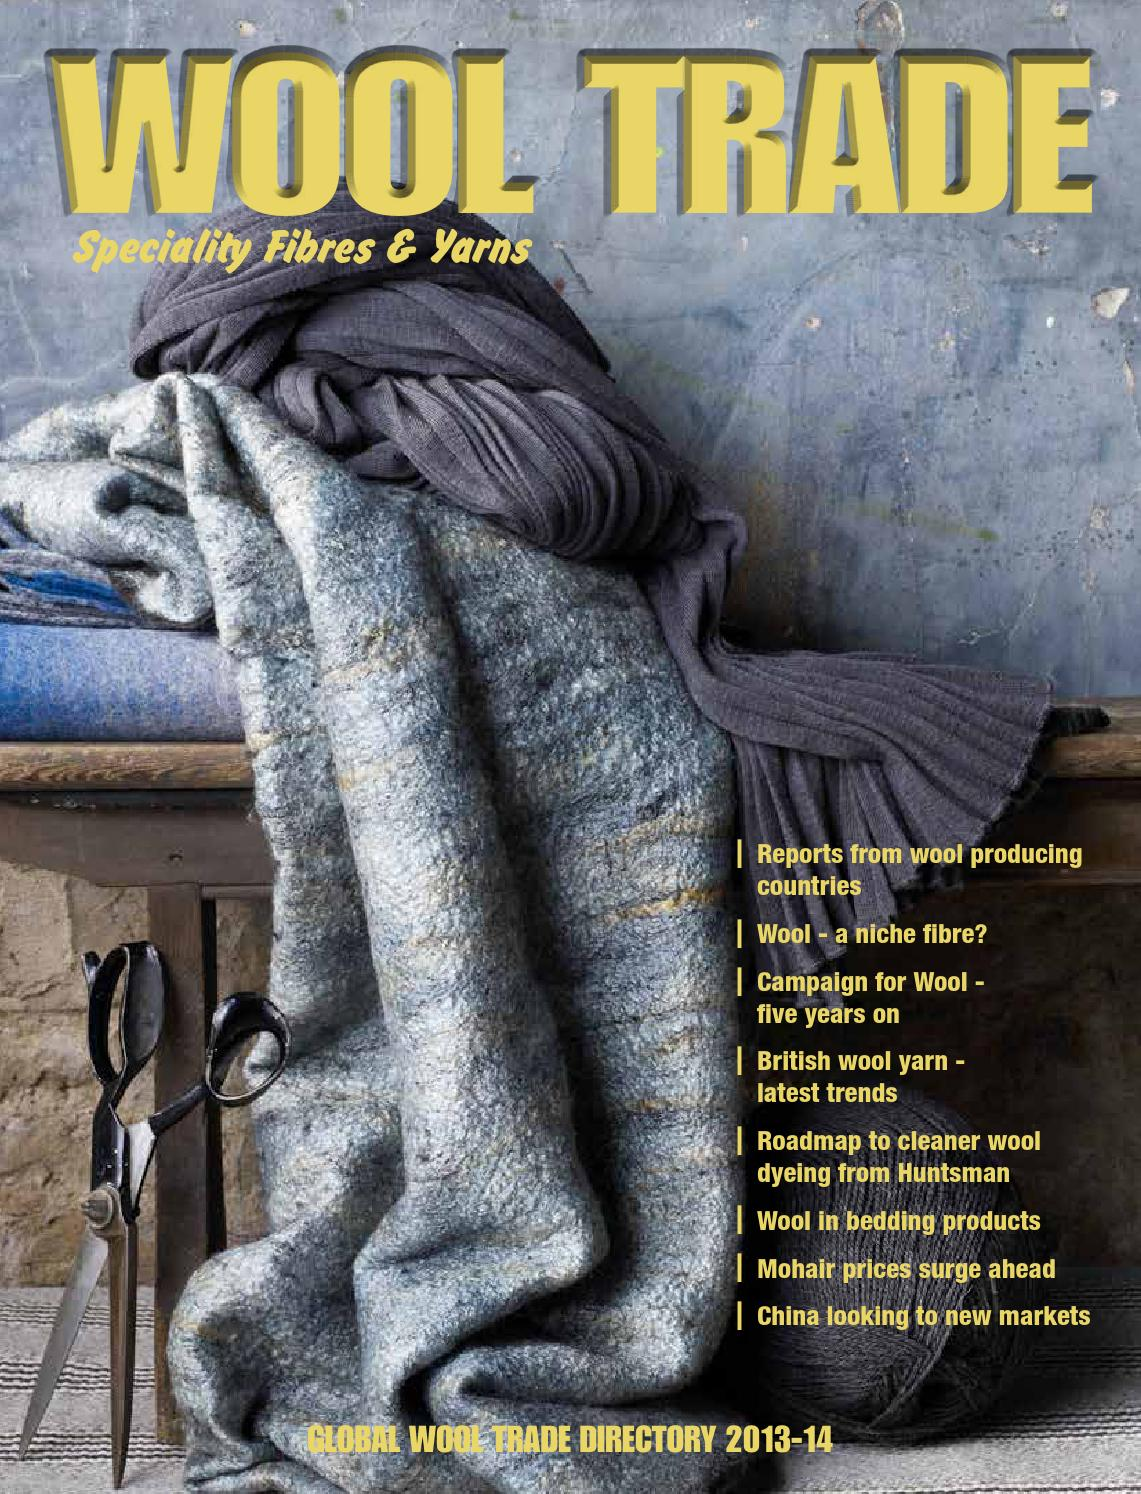 Wool Trade 2016 By Victor Chesky Issuu